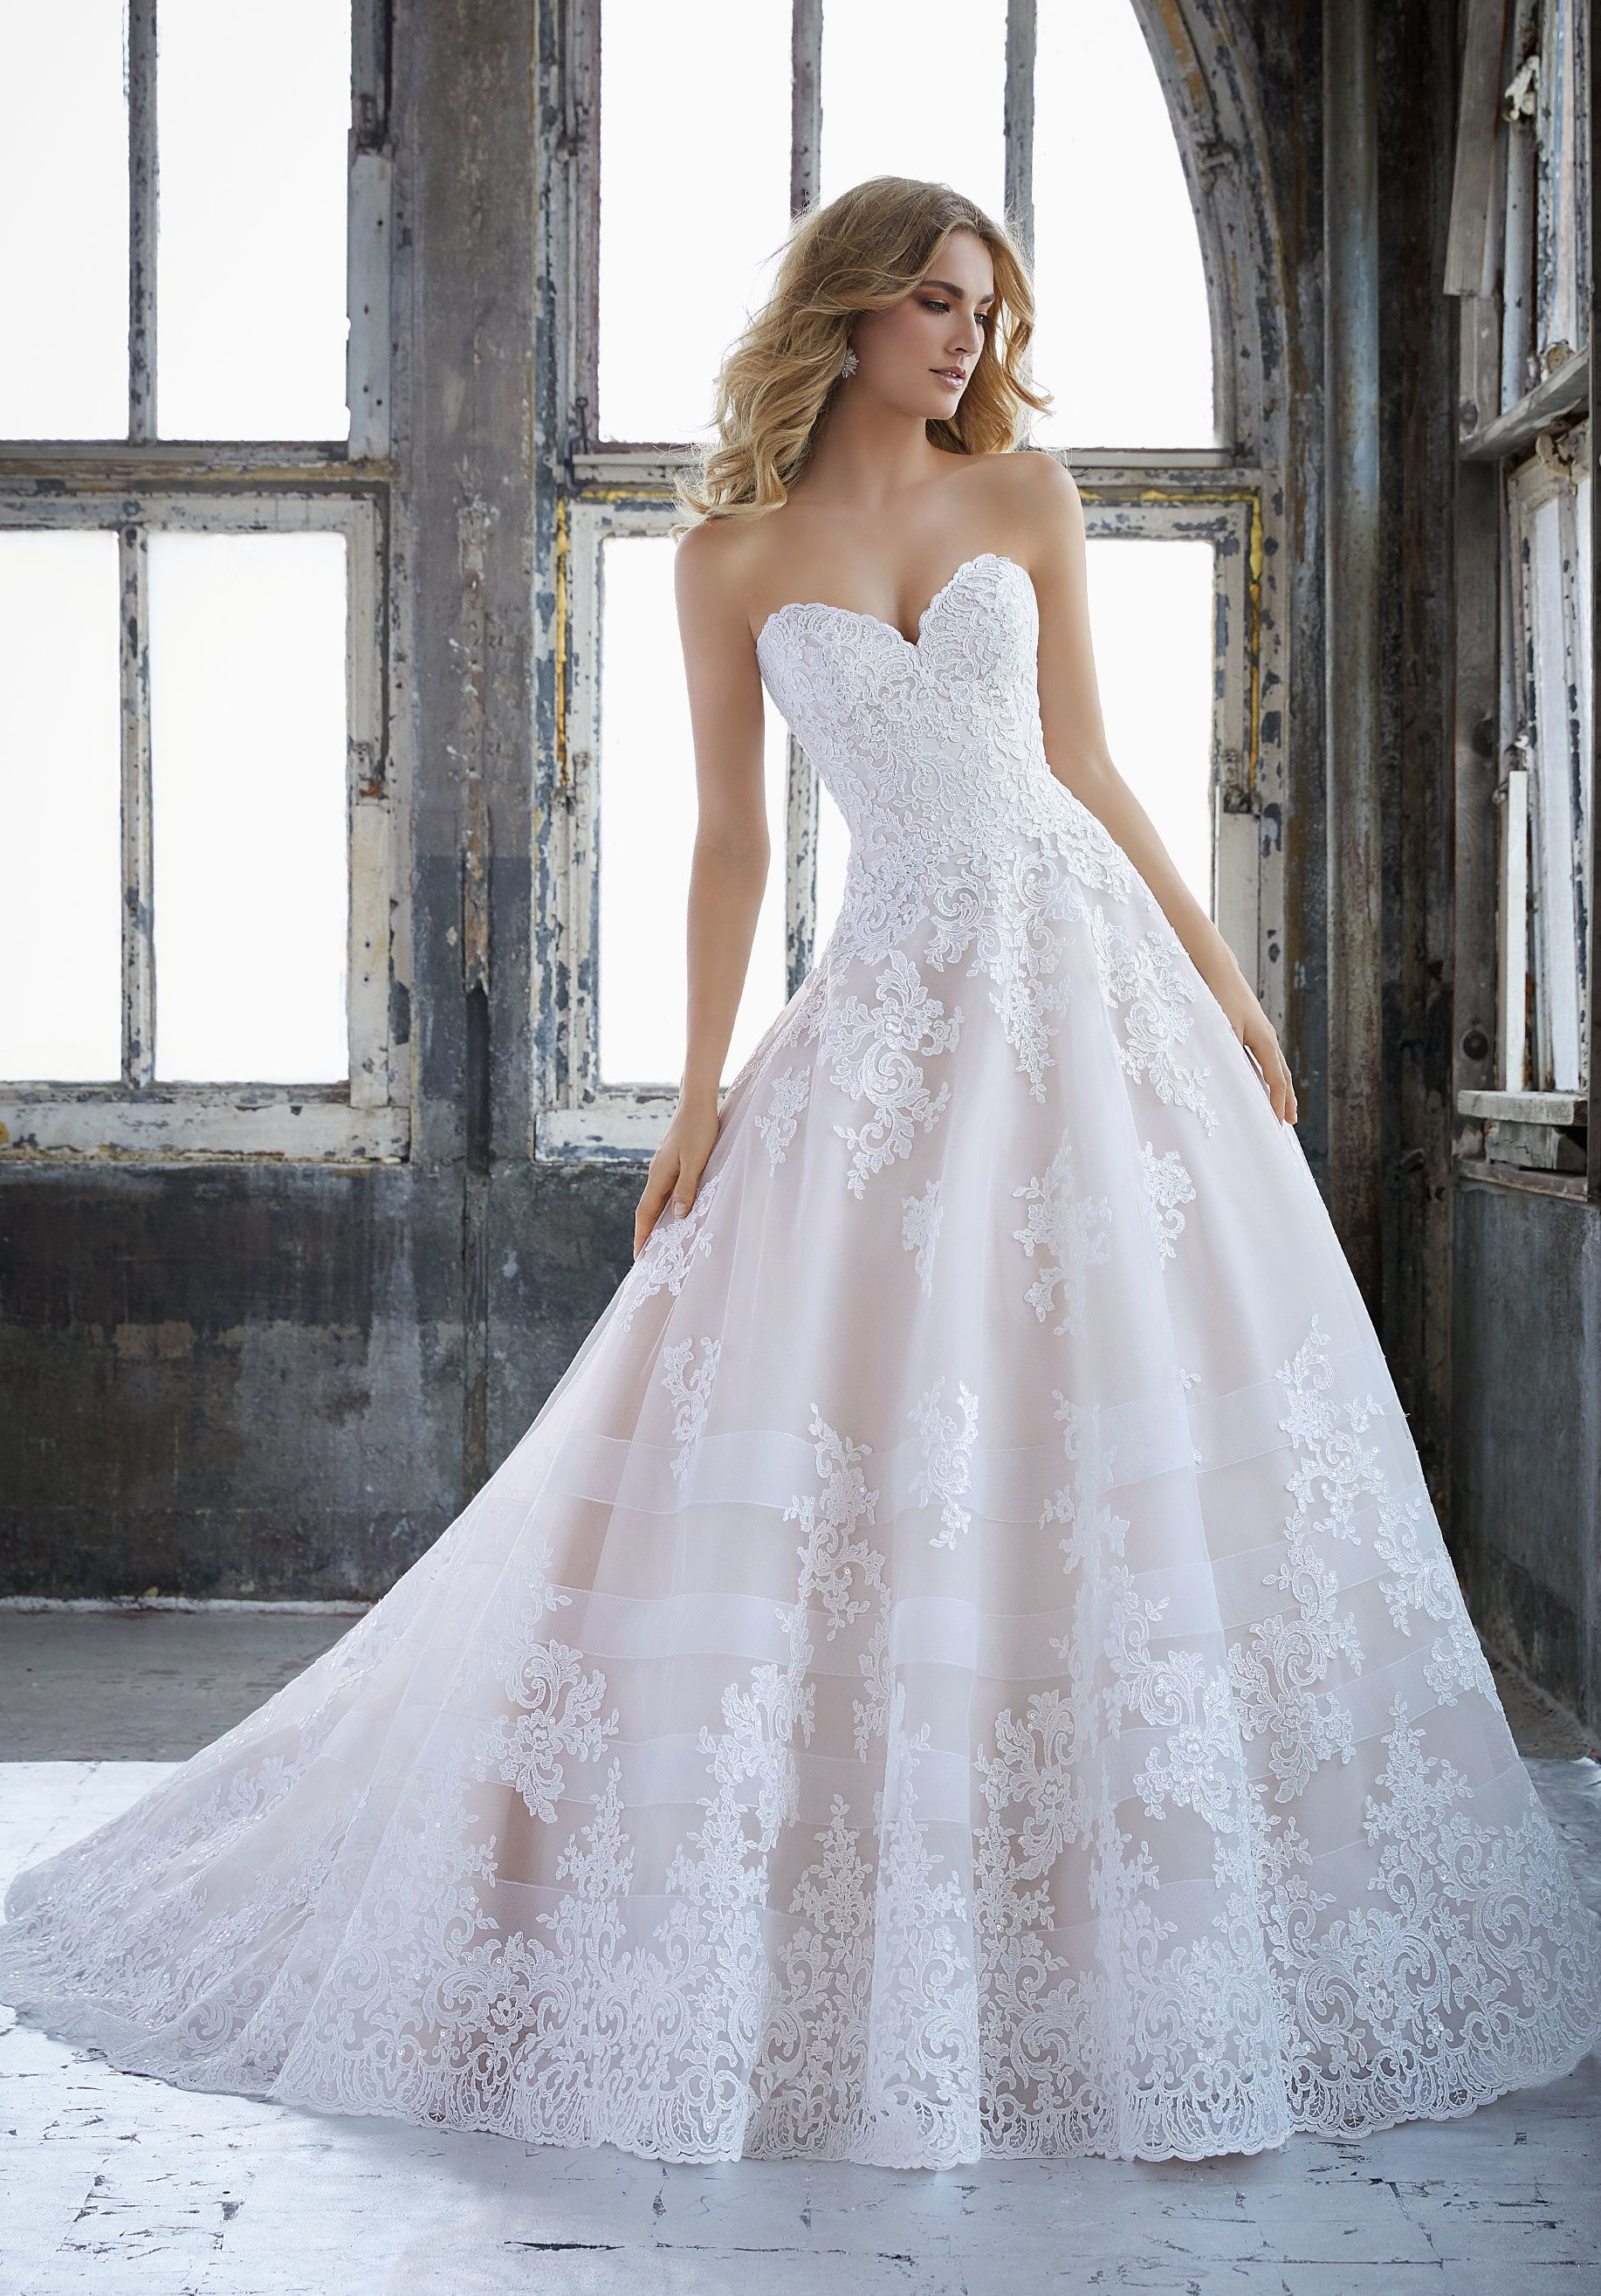 Sweetheart strapless wedding dress  Bridal Week Recap The Necklines We Canut Stop Thinking About